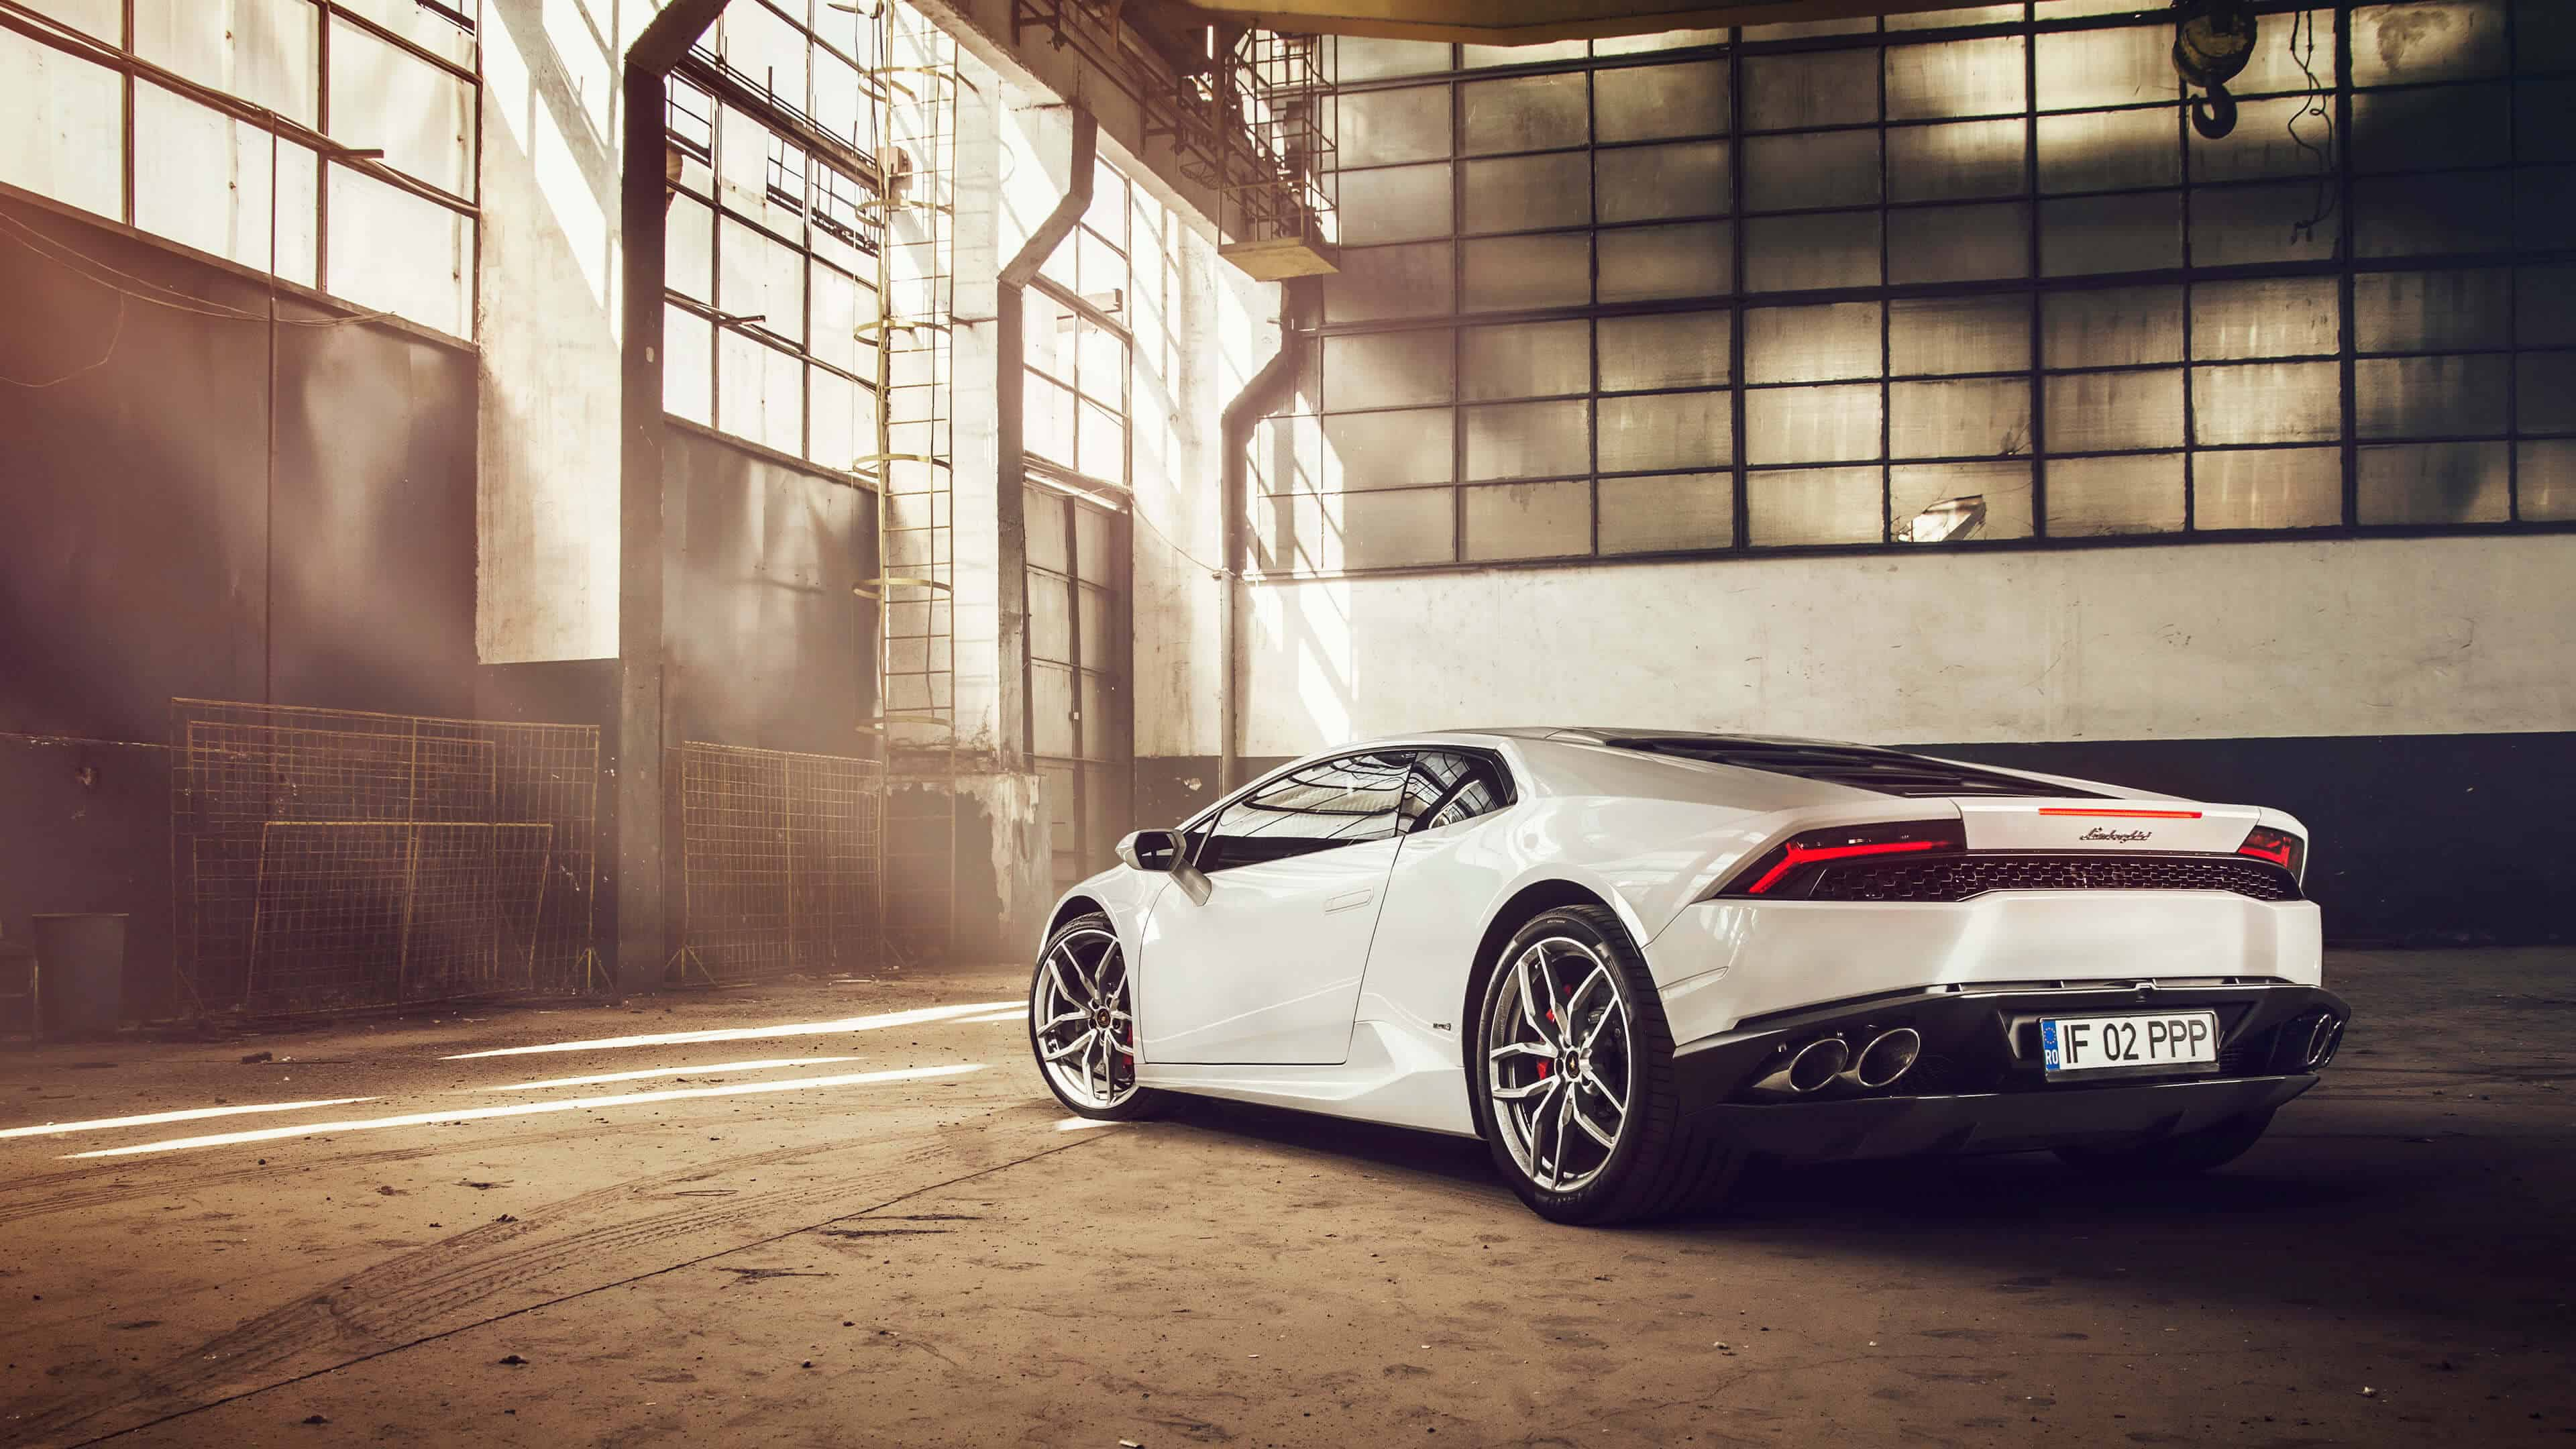 White Lamborghini Huracan Liberty Walk UHD 4K Wallpaper Pixelz